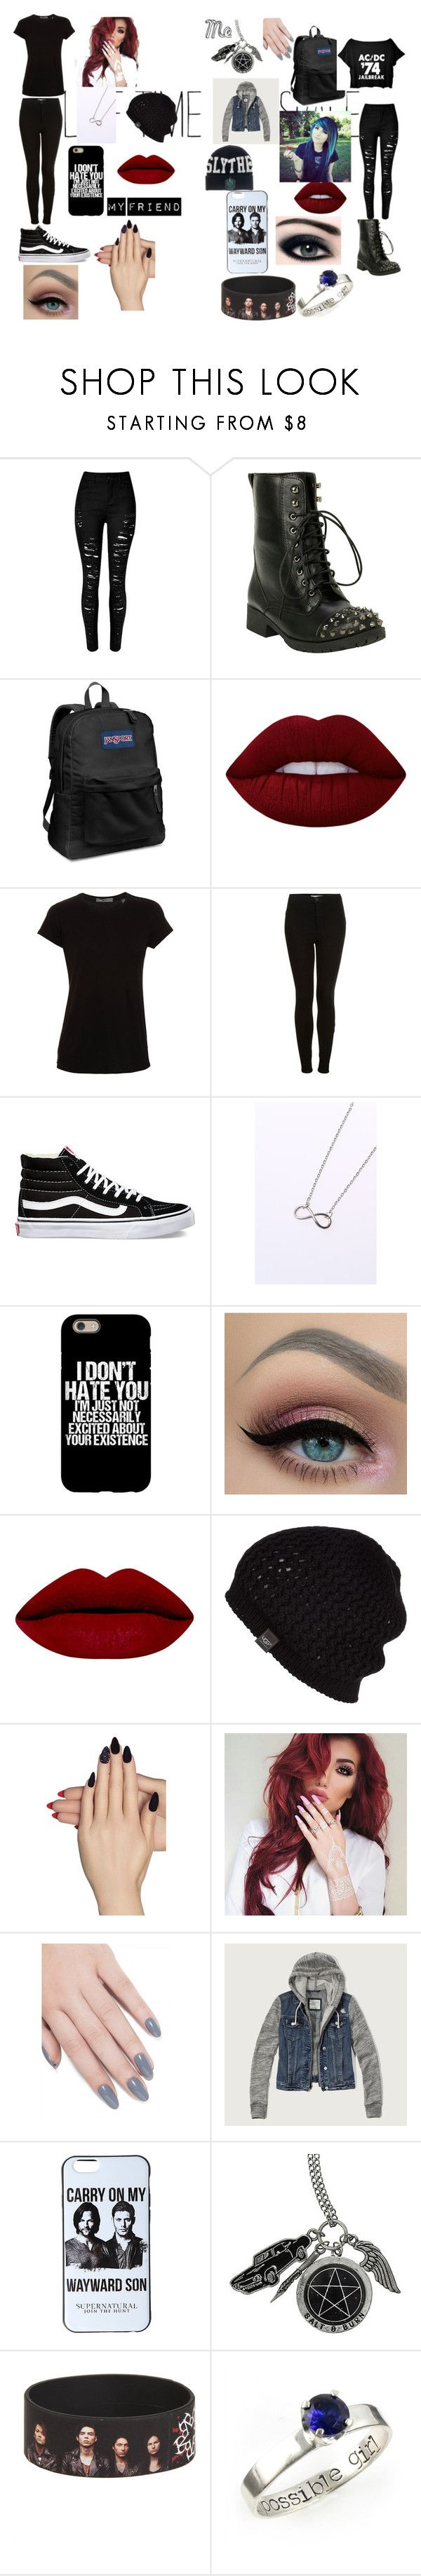 """""""My Friend and Me"""" by emilia-pond ❤ liked on Polyvore featuring JanSport, Lime Crime, Vince, Topshop, Vans, UGG Australia, Static Nails, ncLA and Abercrombie & Fitch"""